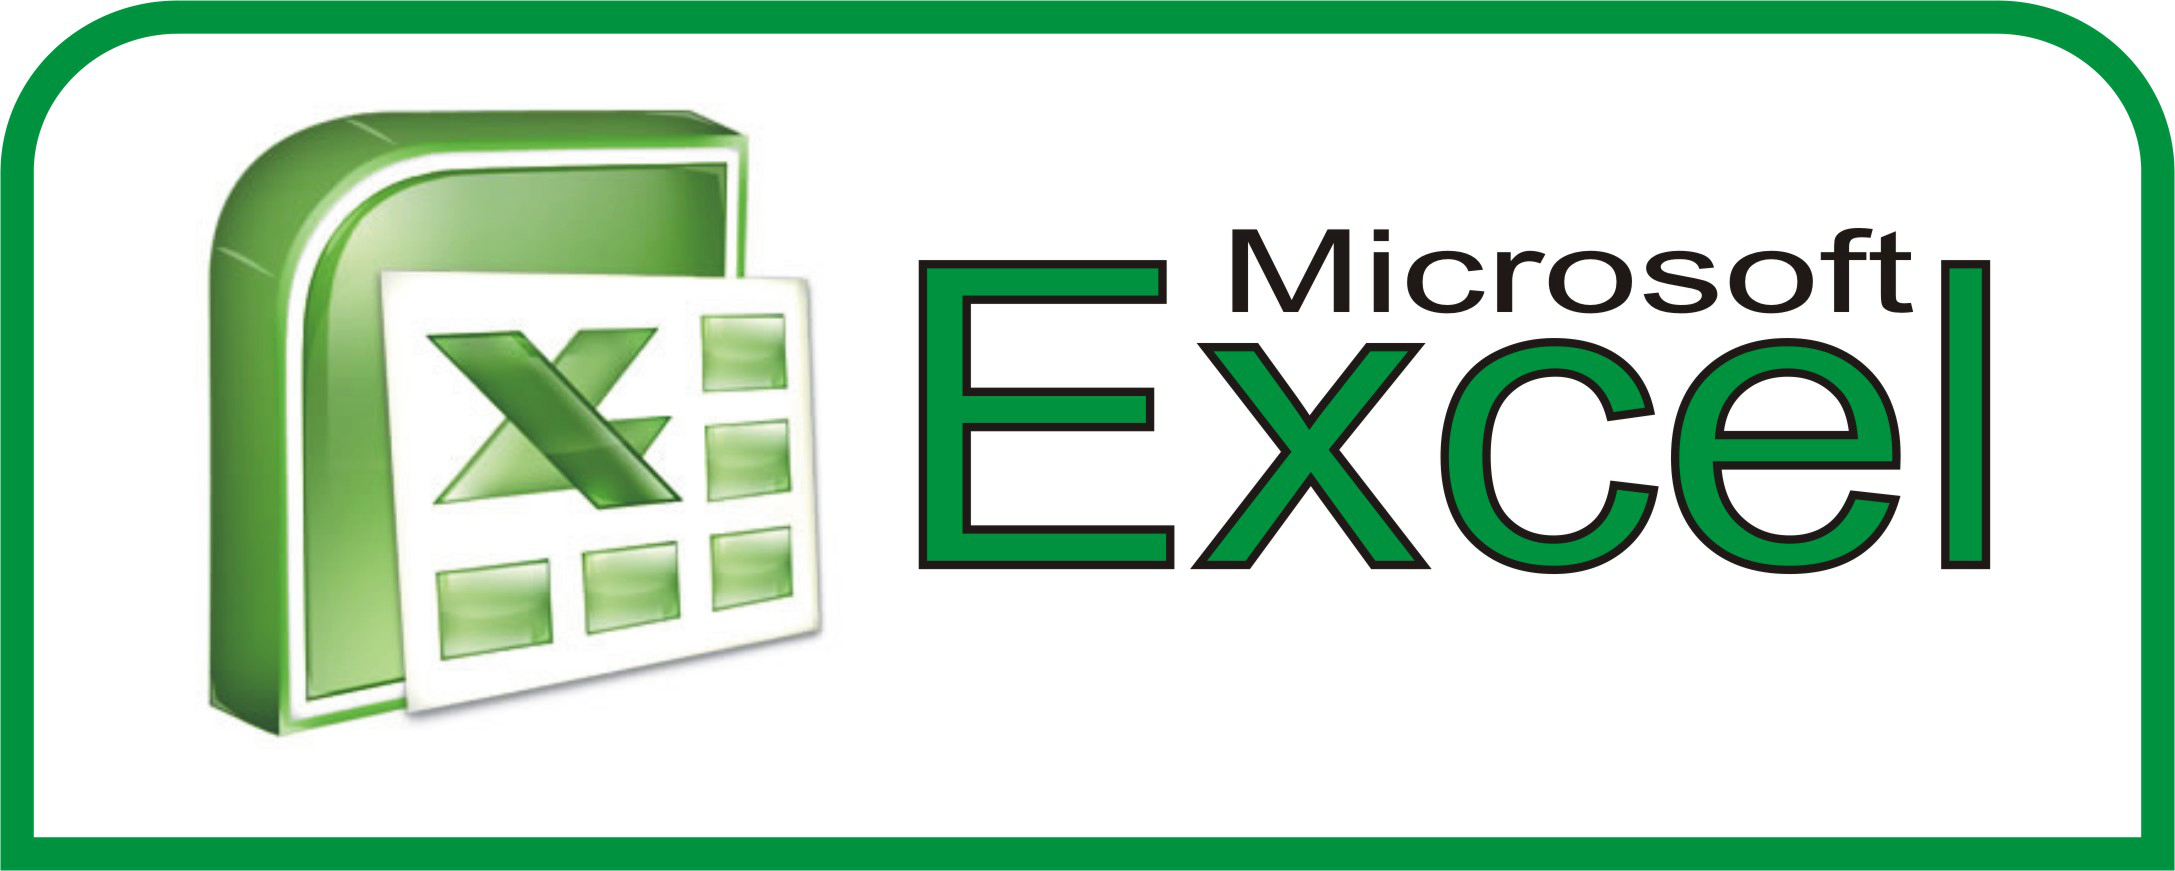 Ediblewildsus  Wonderful  Excel Shortcuts You Probably Didnt Know About  Techdissected With Outstanding Normal Curve Excel Besides Excel Sql Connection Furthermore Drill Down In Excel With Easy On The Eye Sample Mean In Excel Also Excel Vba Email In Addition How To Write An If Formula In Excel And Subtract Percentage In Excel As Well As Excel Auto Complete Additionally Excel Pivot Table Blank From Techdissectedcom With Ediblewildsus  Outstanding  Excel Shortcuts You Probably Didnt Know About  Techdissected With Easy On The Eye Normal Curve Excel Besides Excel Sql Connection Furthermore Drill Down In Excel And Wonderful Sample Mean In Excel Also Excel Vba Email In Addition How To Write An If Formula In Excel From Techdissectedcom